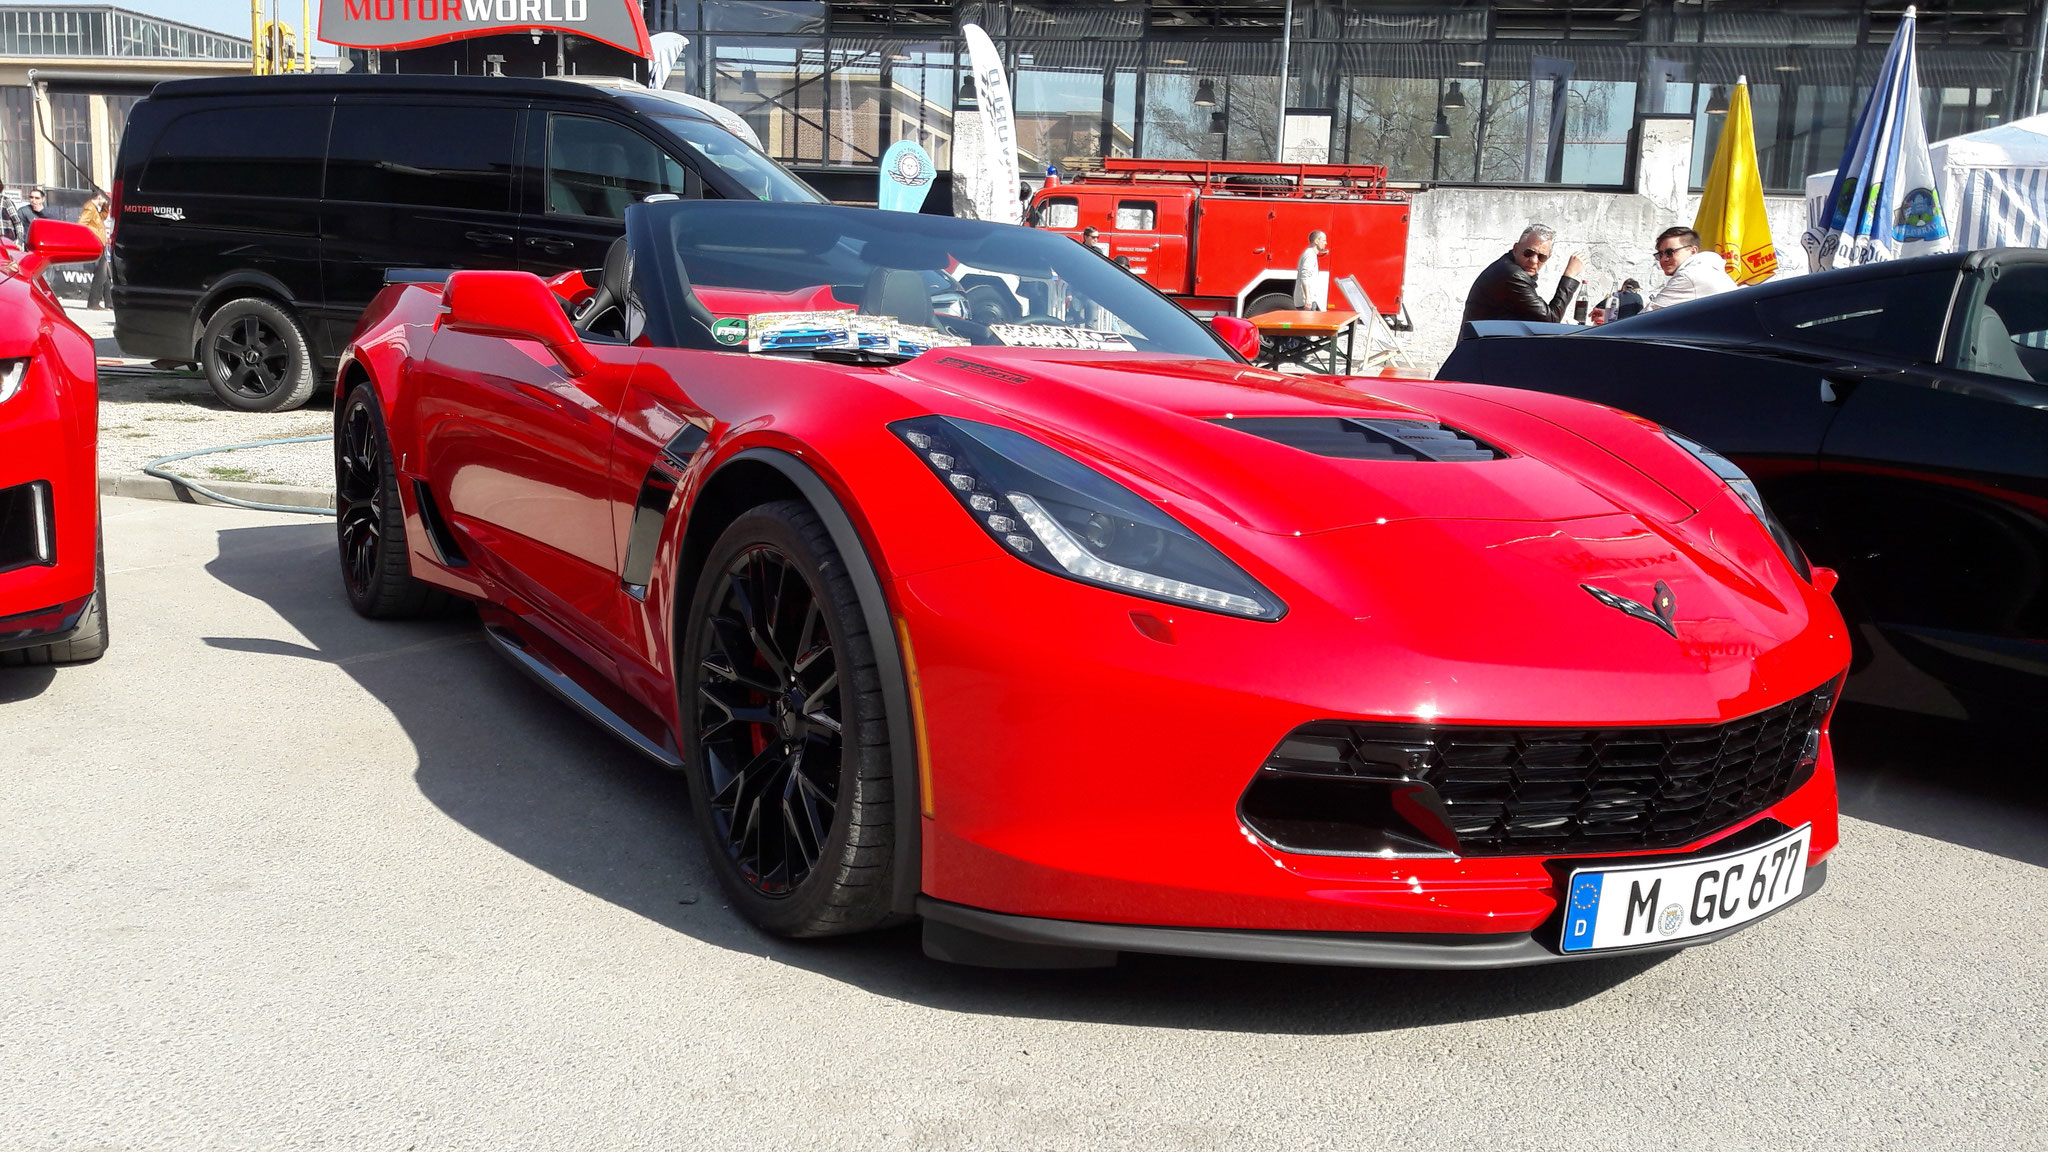 Chevrolet Corvette C7 Z06 Convertible - M-GC-677